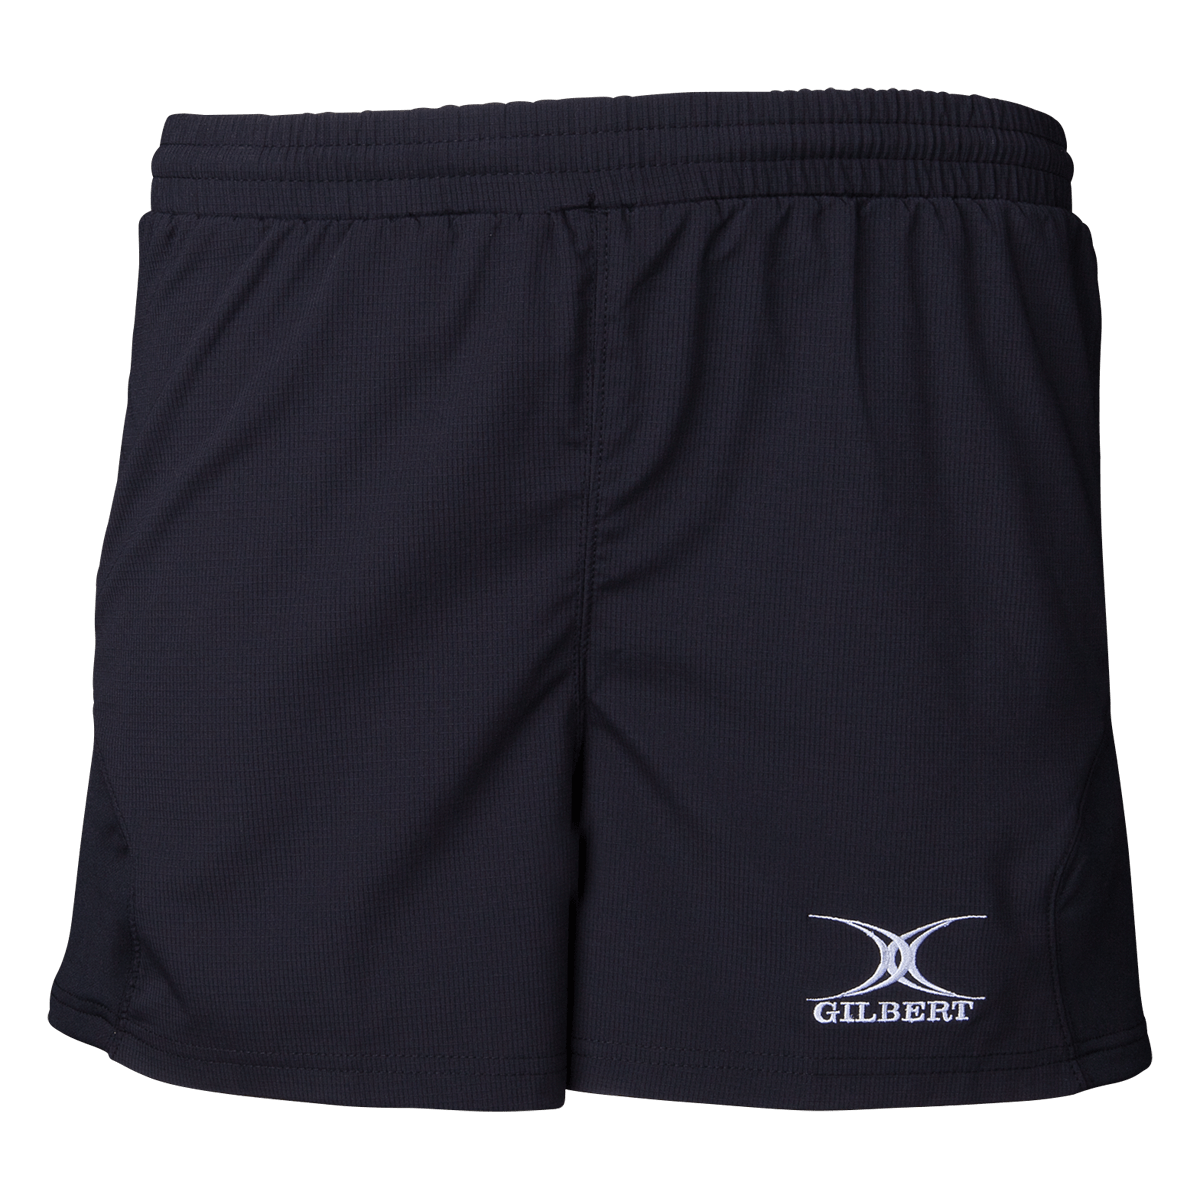 Gilbert Black Virtuo Match Shorts